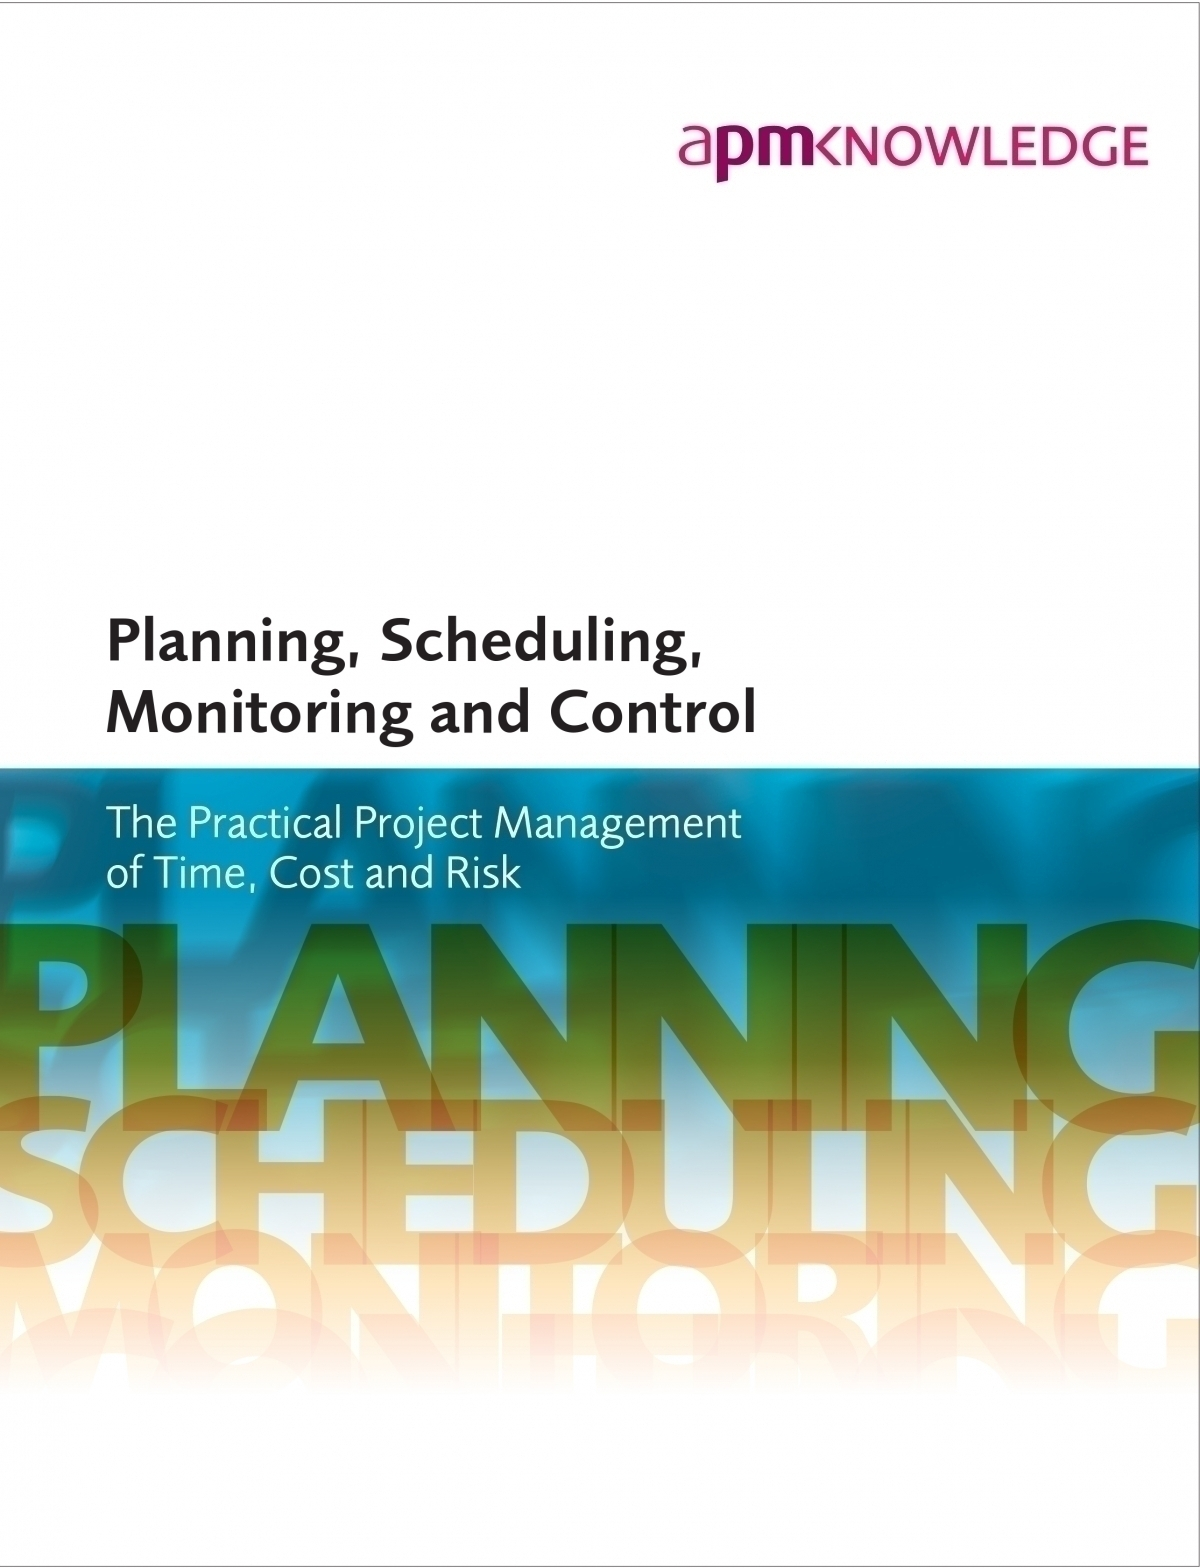 APM Planning, Scheduling, Monitoring and Control guide